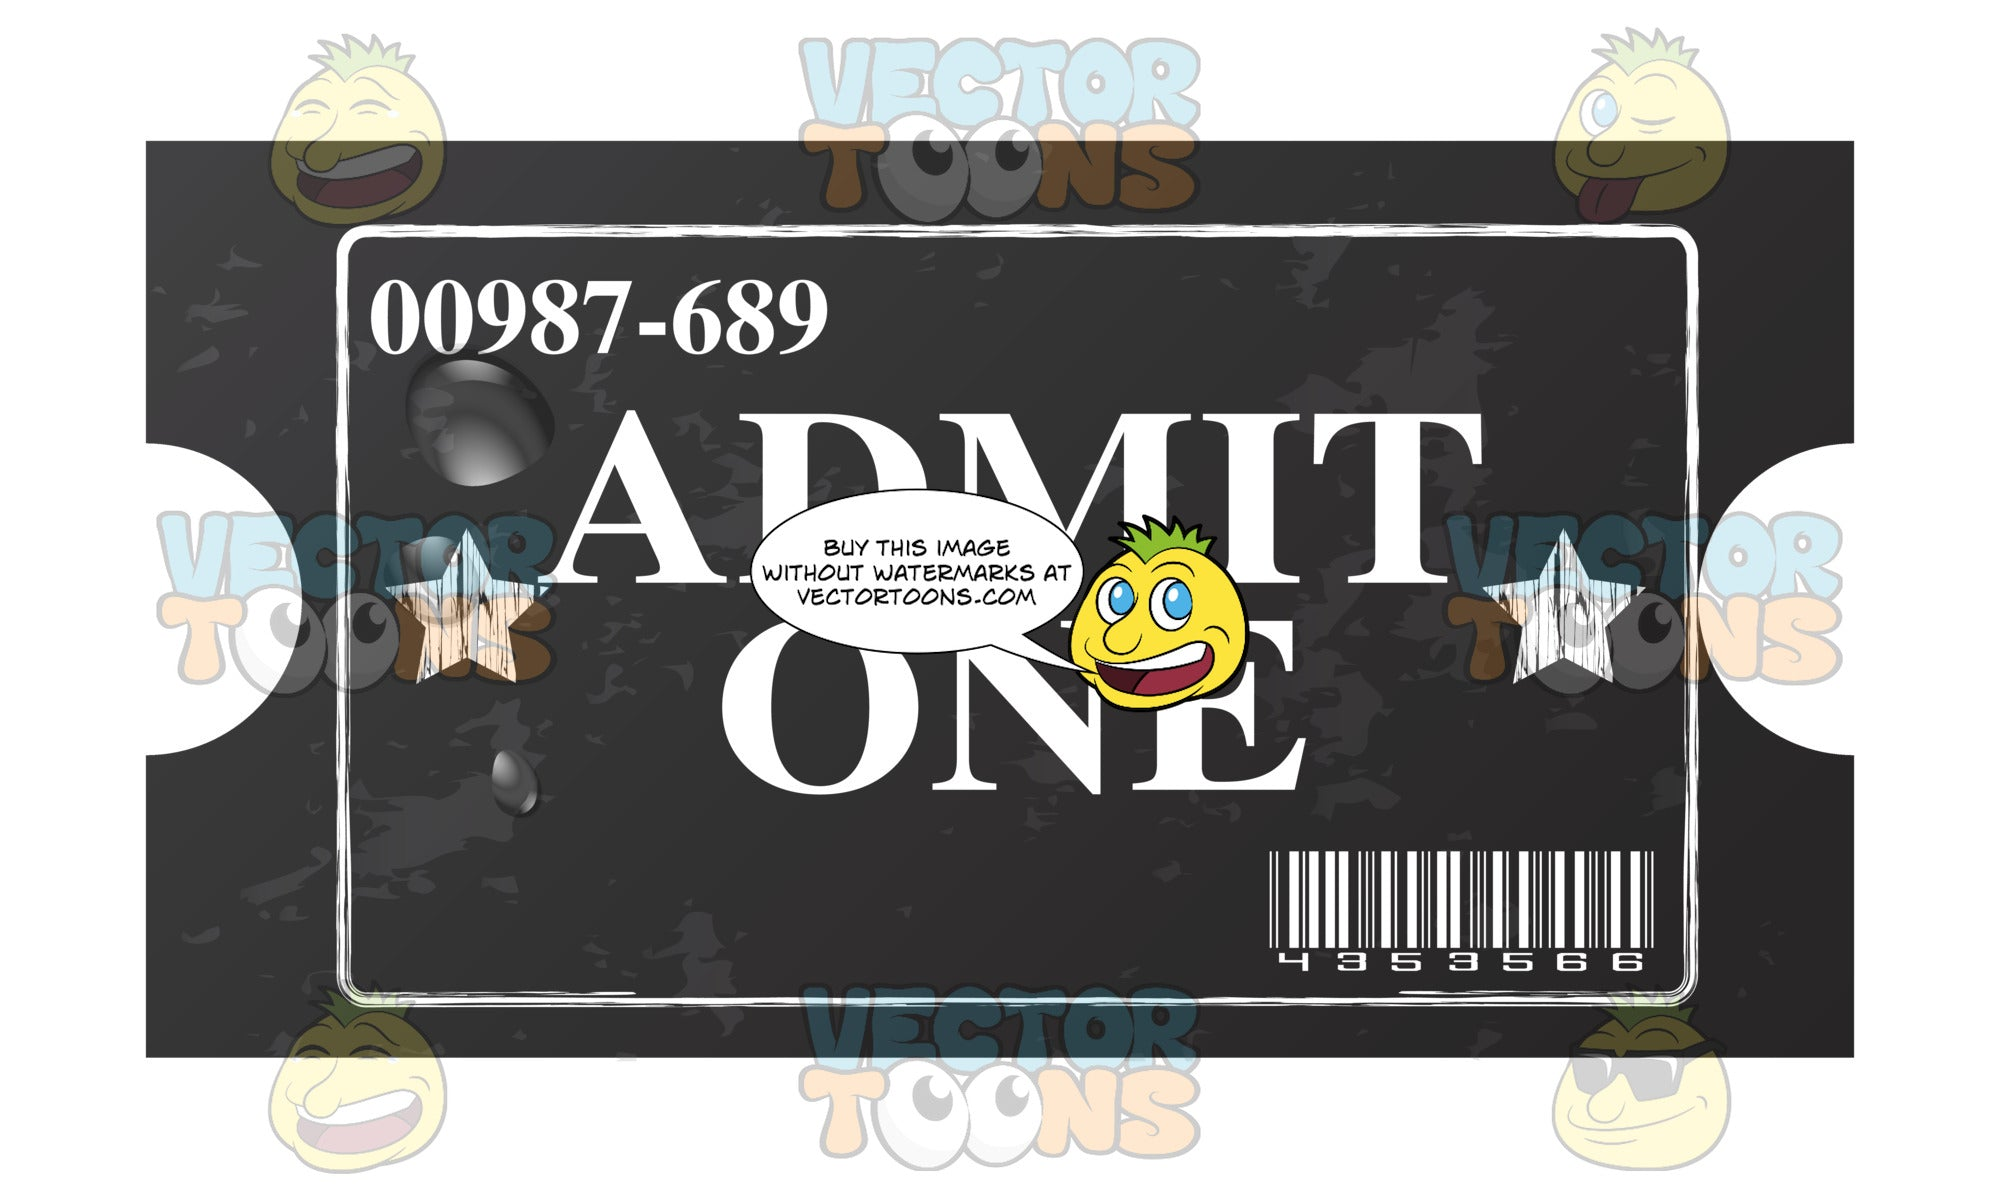 Worn Black Paper Entry Ticket With White 'Admit One' Type On It And Stars